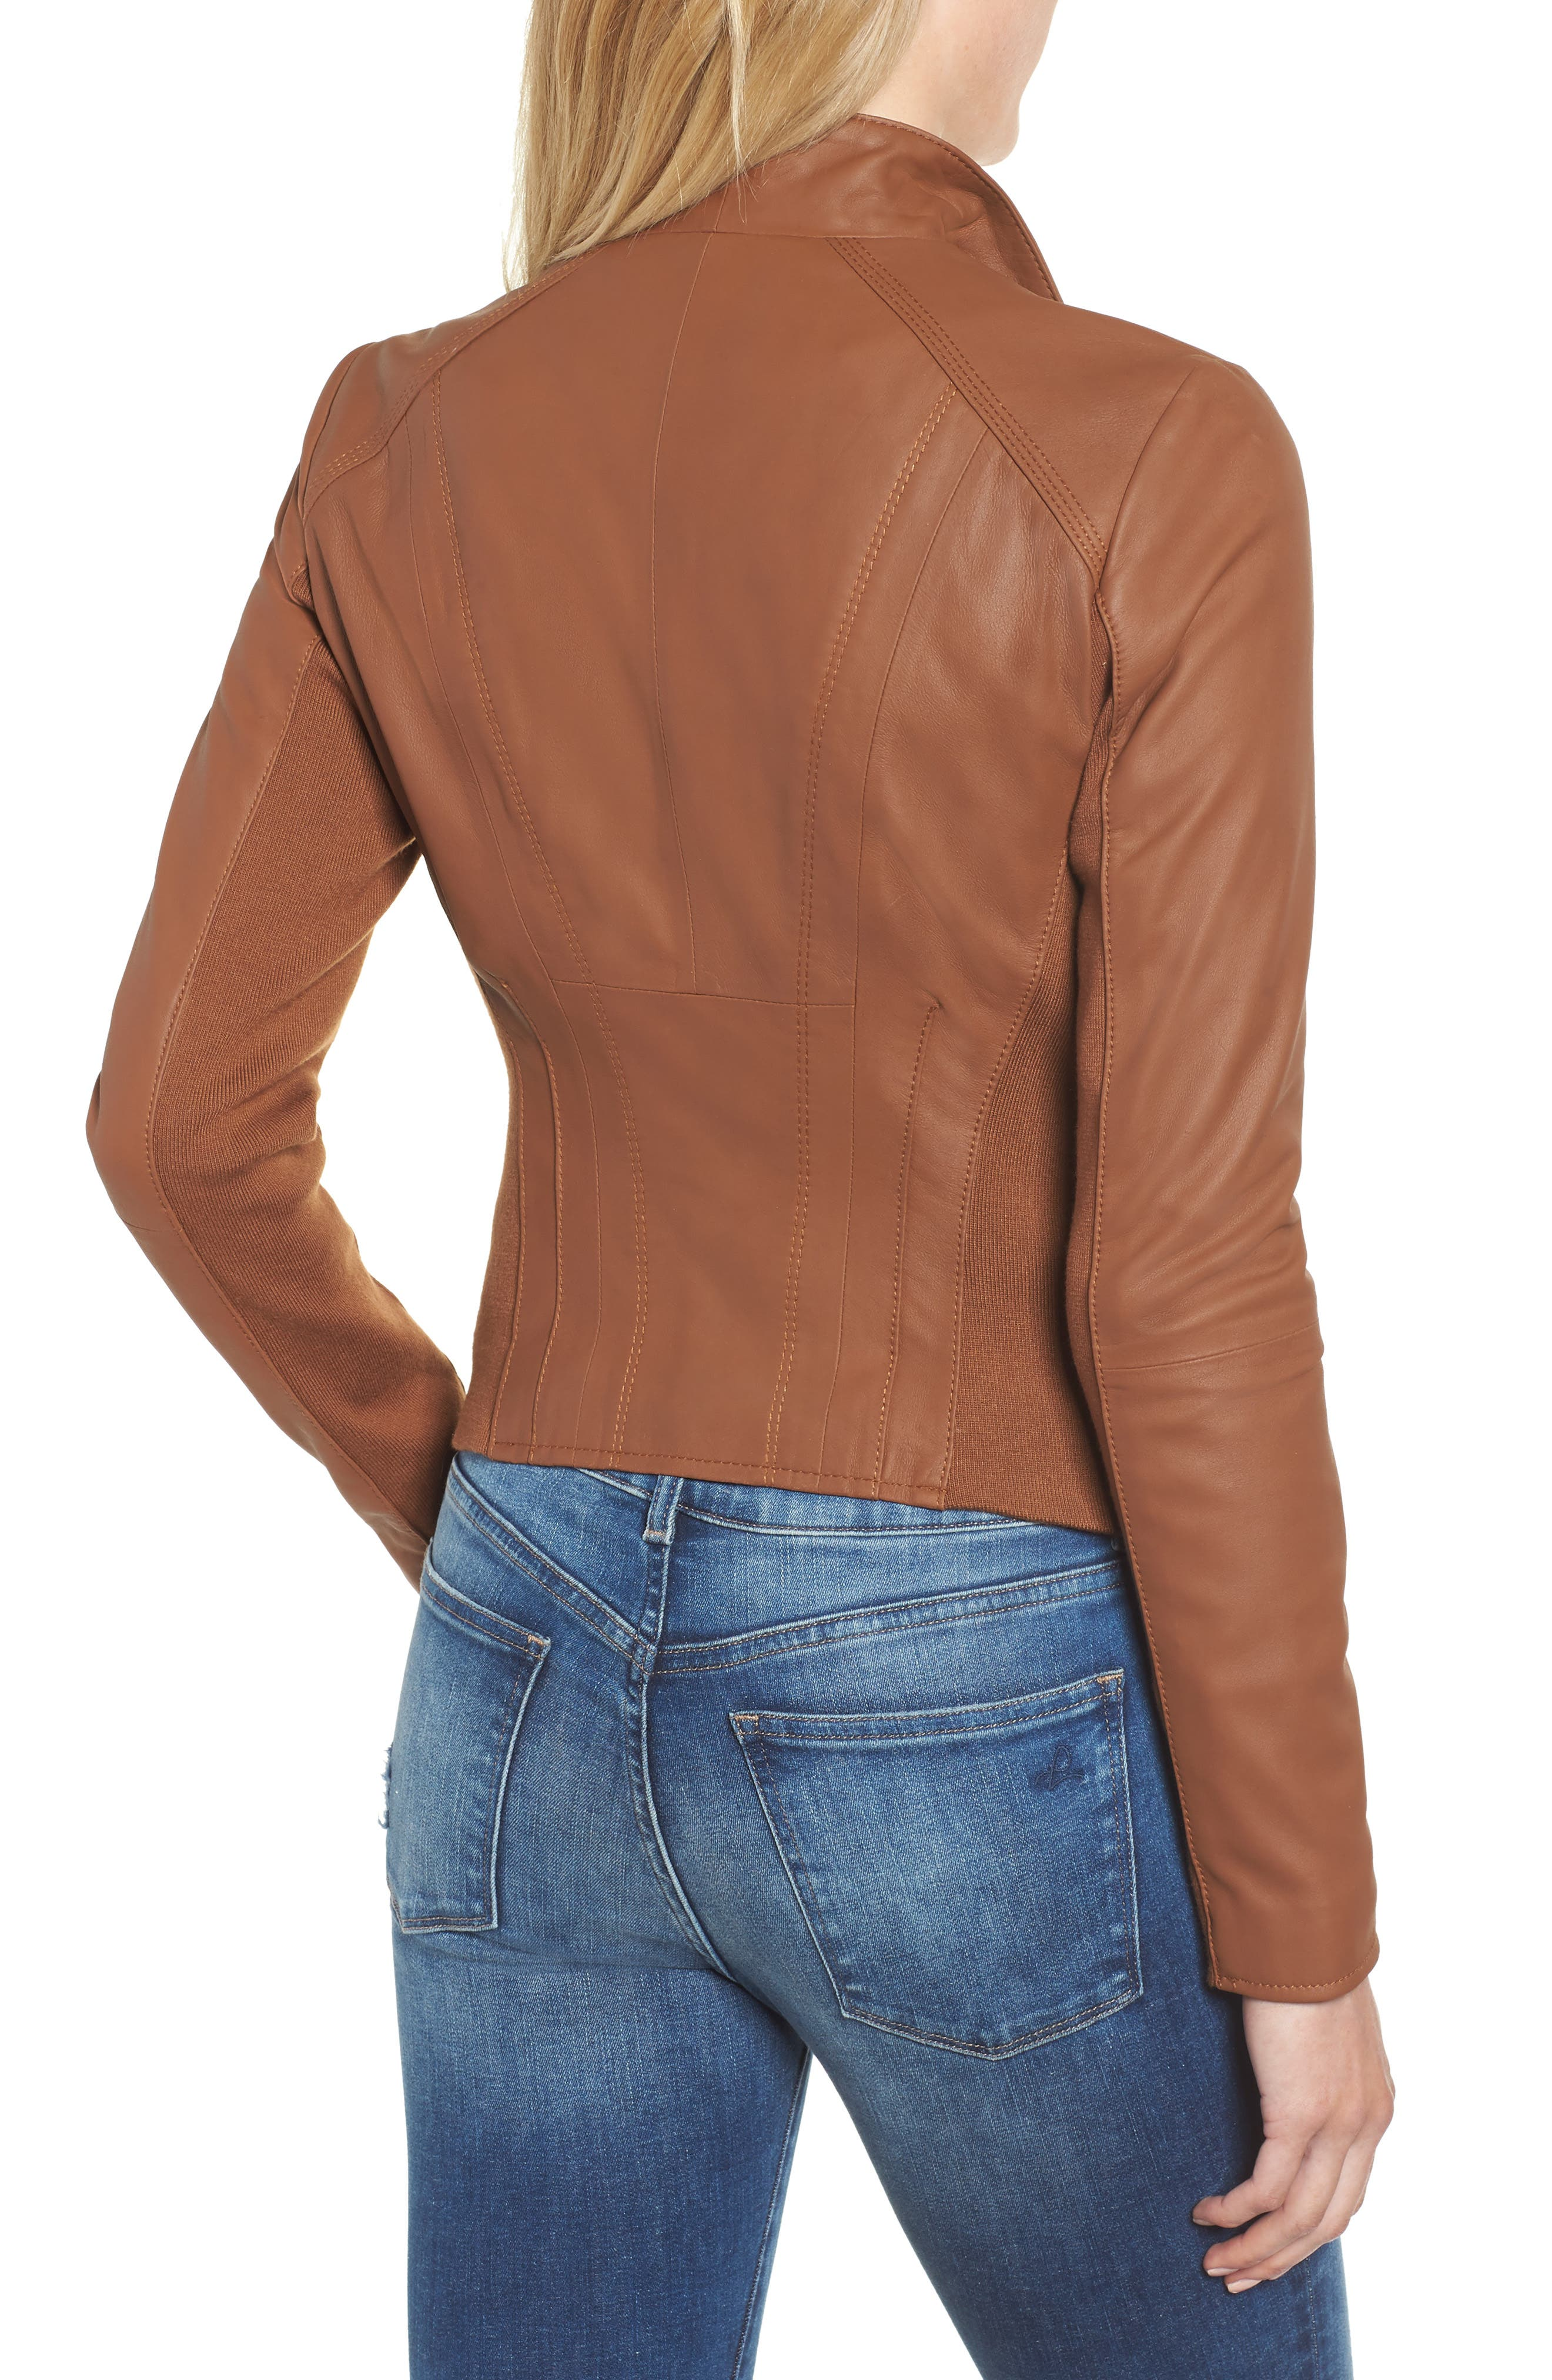 ANDREW MARC, Marc New York by Andrew Marc Felix Stand Collar Leather Jacket, Alternate thumbnail 2, color, WHISKEY